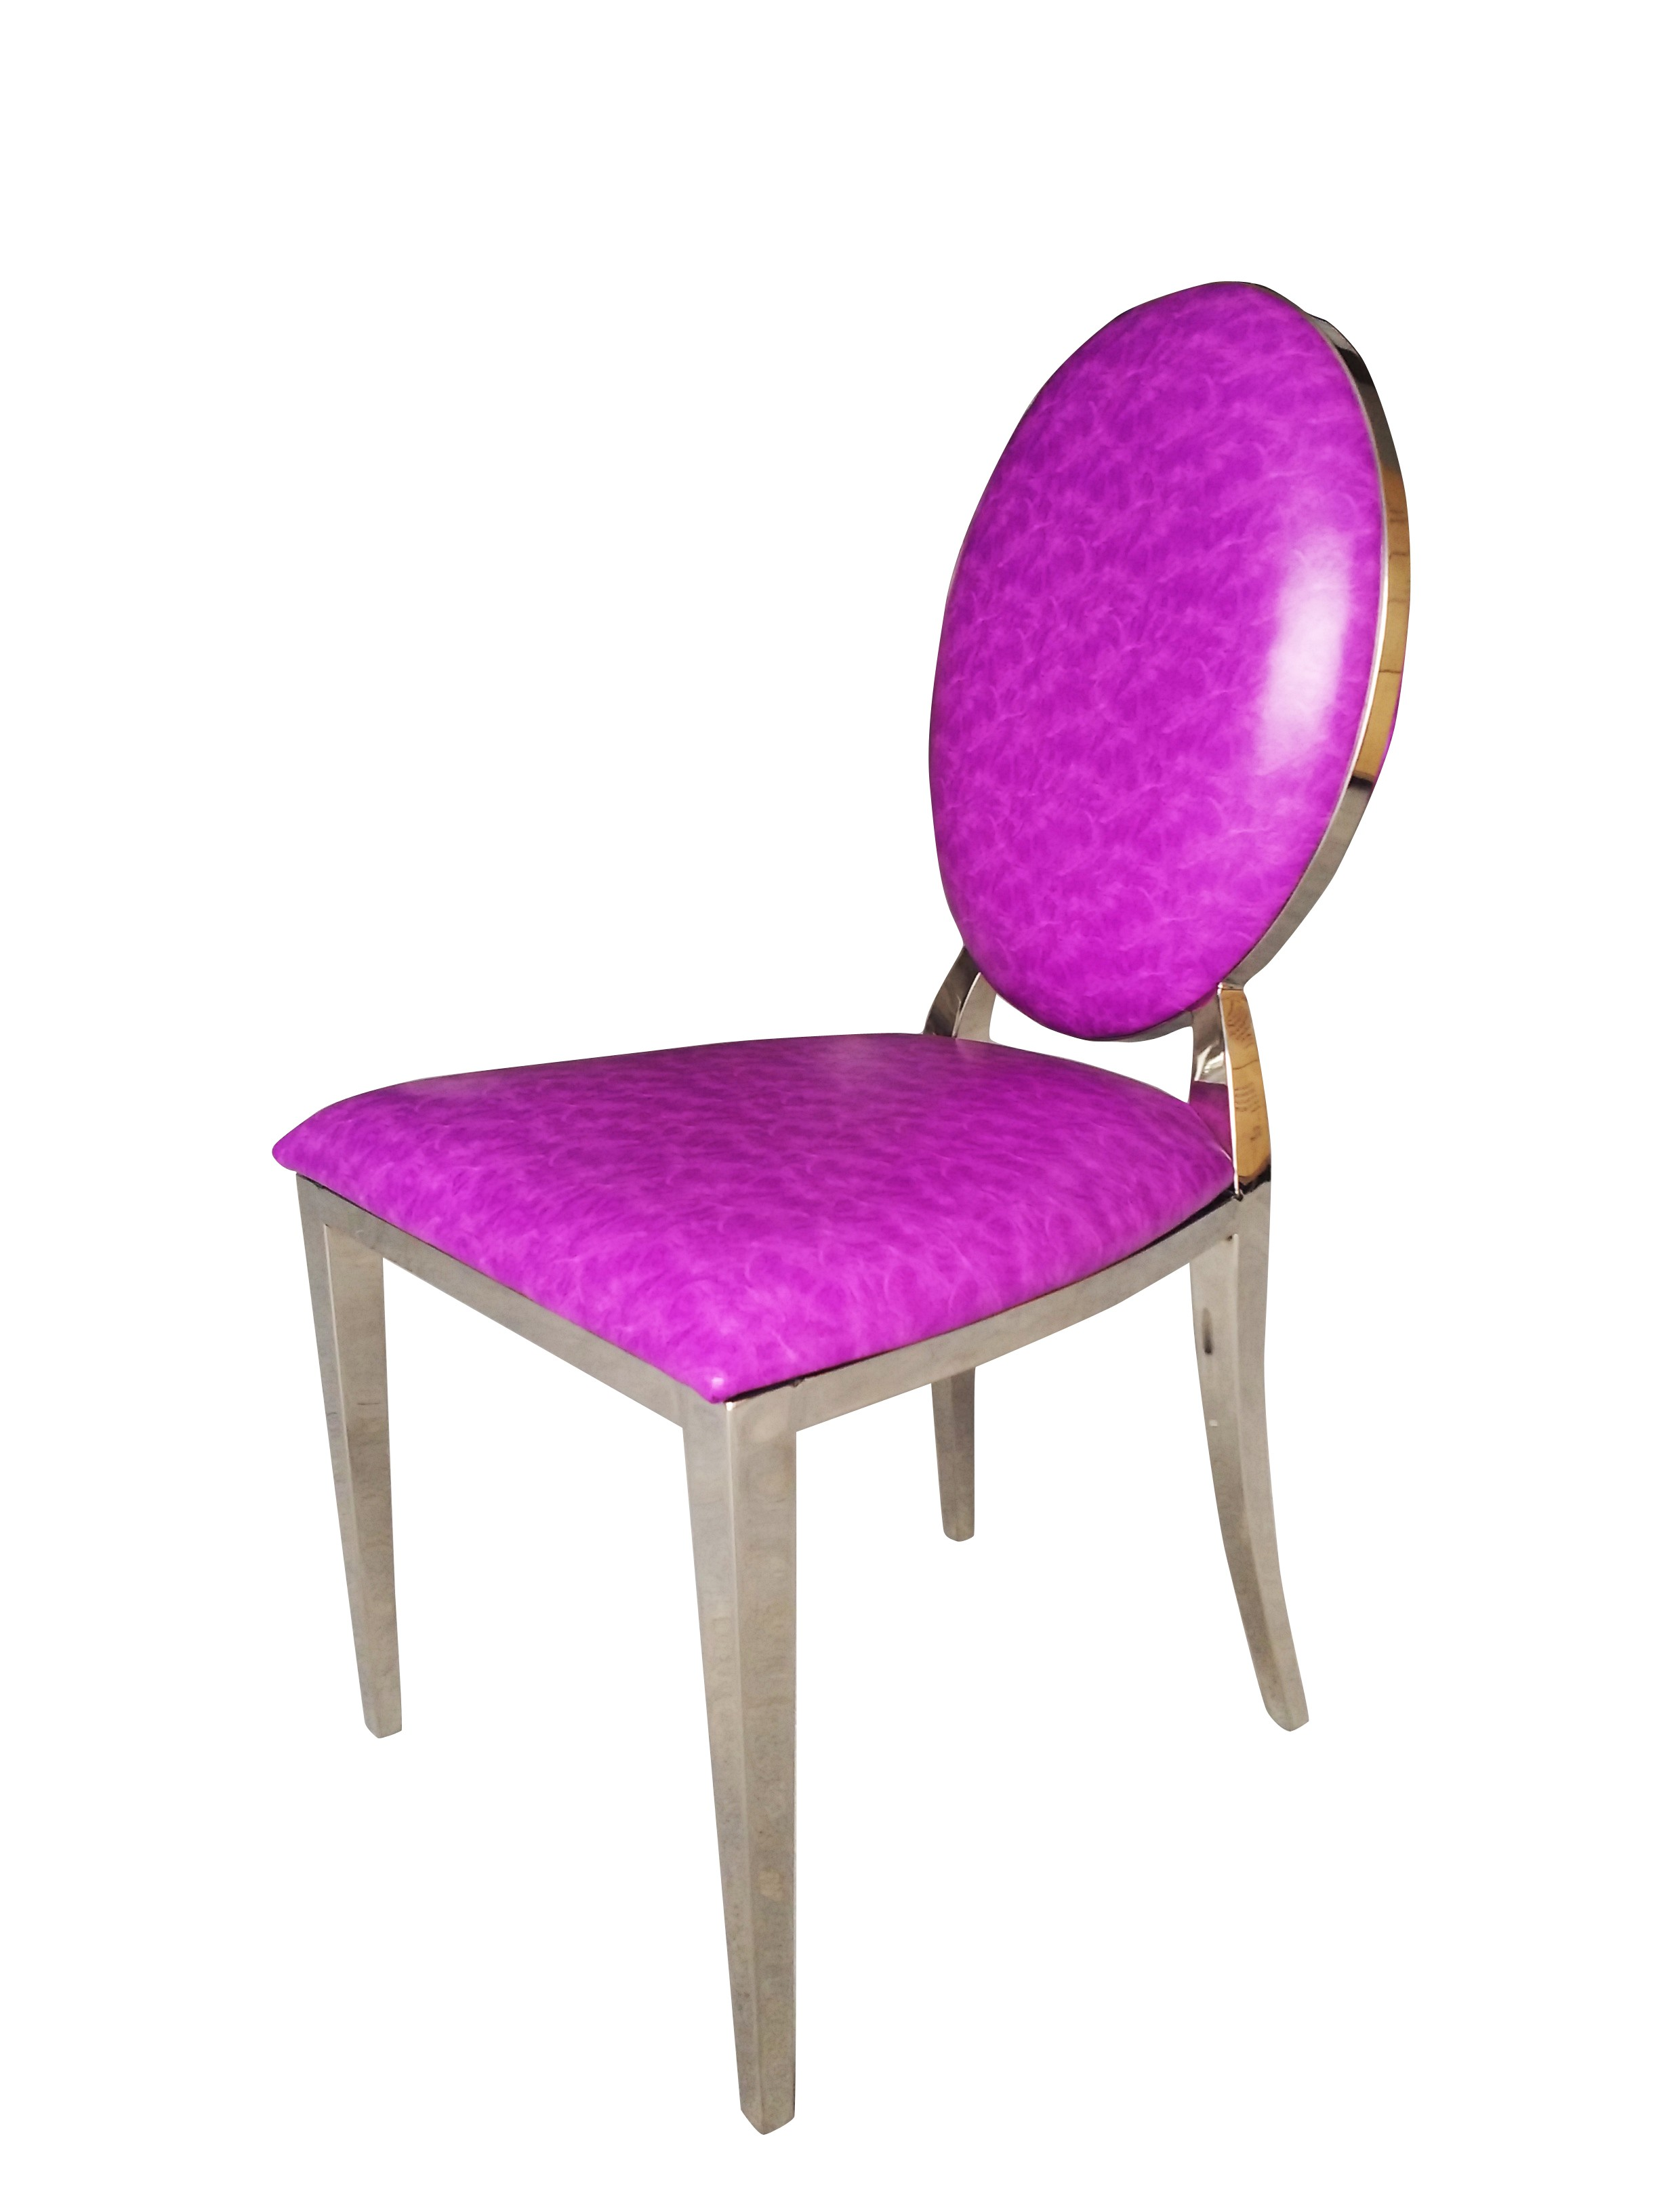 Silla Chrome FT83 Fucsia Simil Cuero